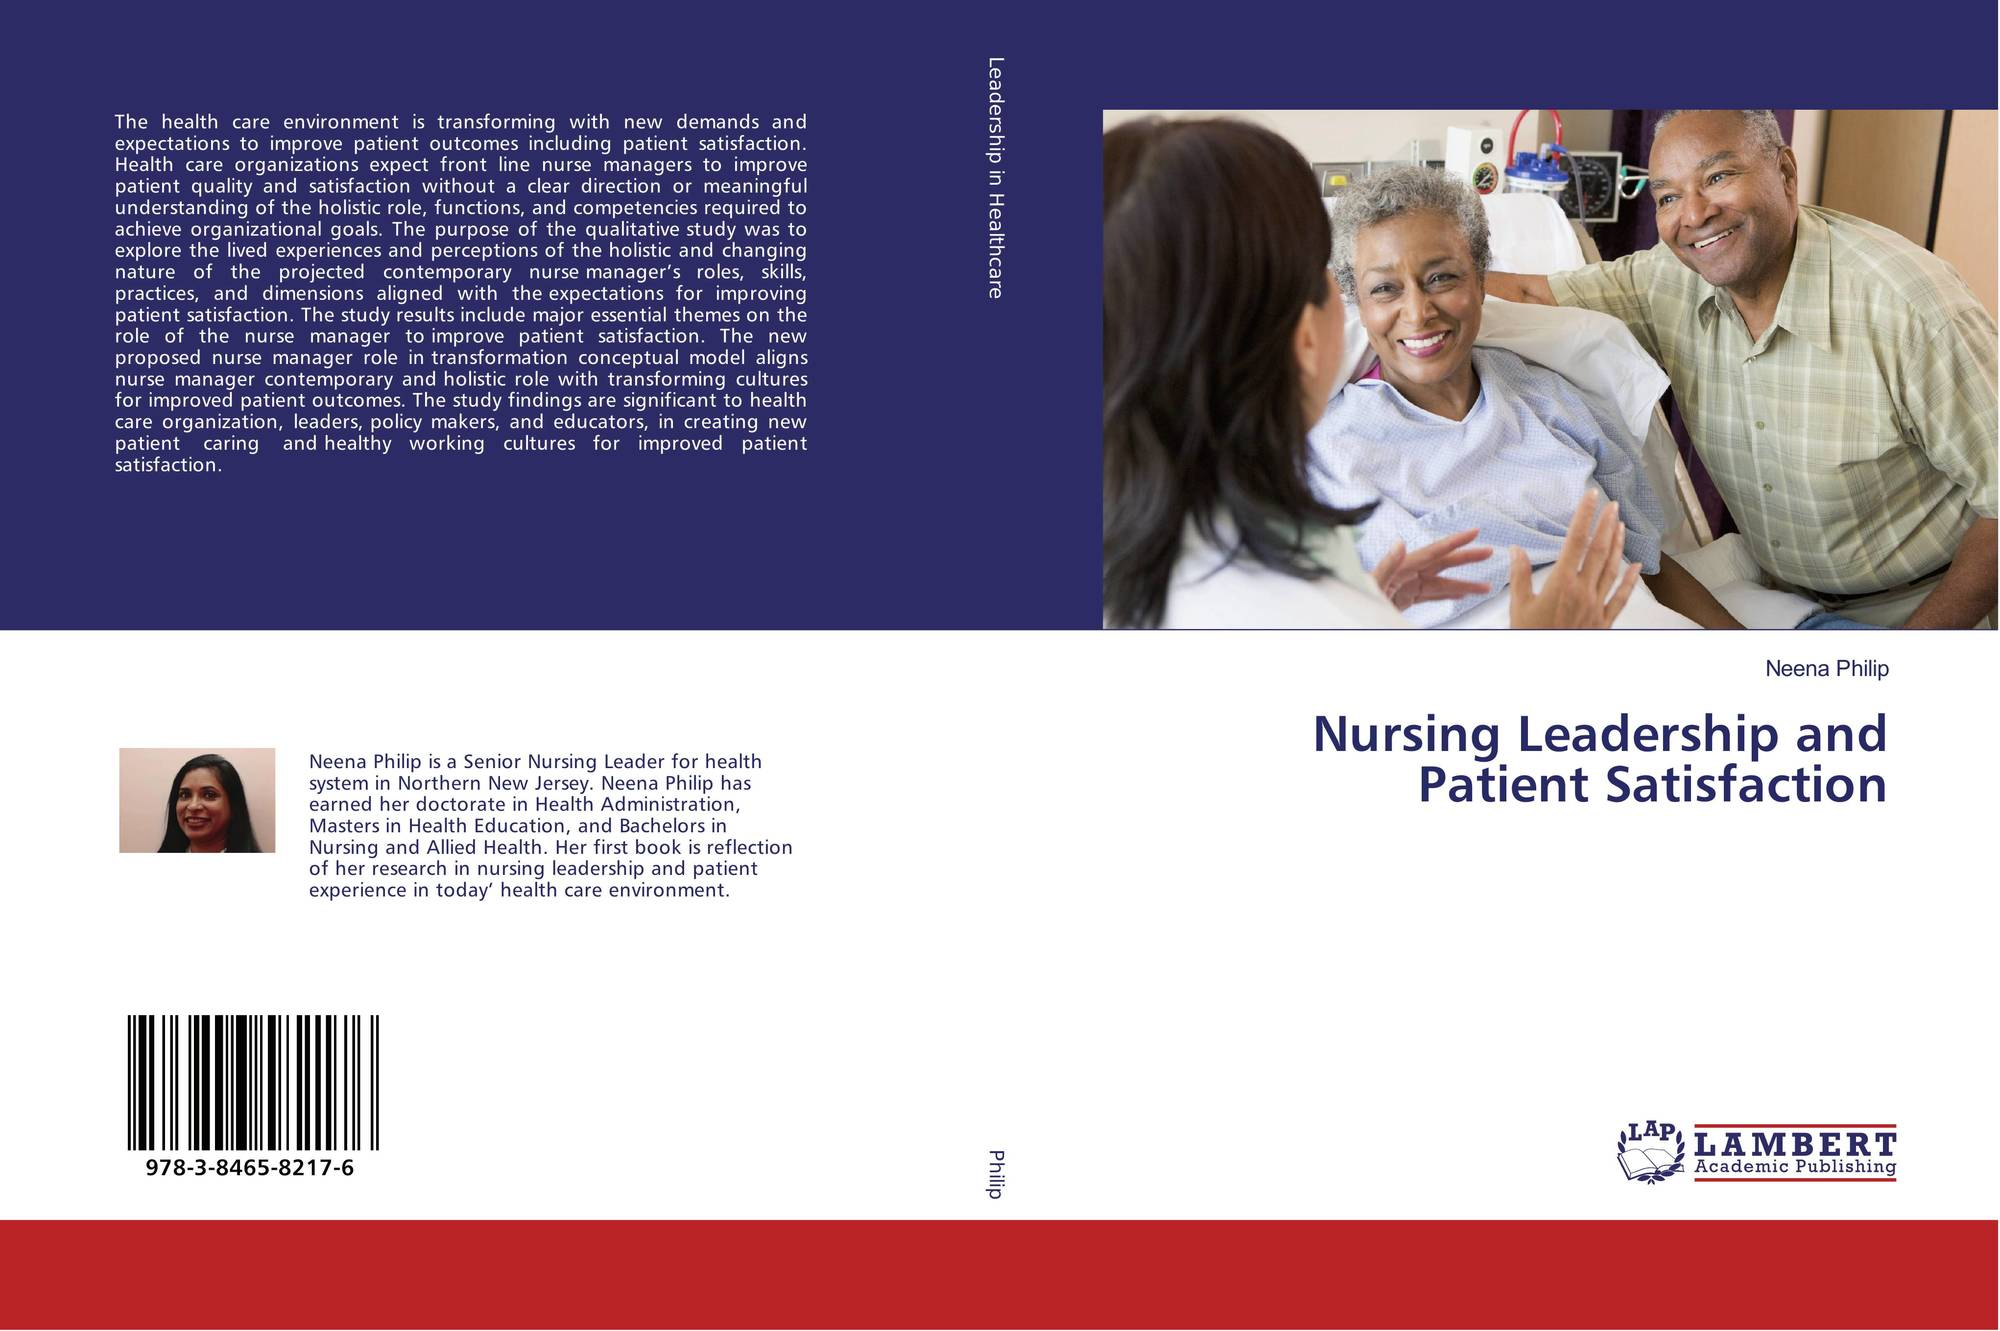 transforming nursing and healthcare essay Buy healthcare and nursing essay paper online introduction multidisciplinary and multi-professional teams exemplify an essential component of today's healthcare systems through multidisciplinary teams different elements of care are coordinated and delivered.